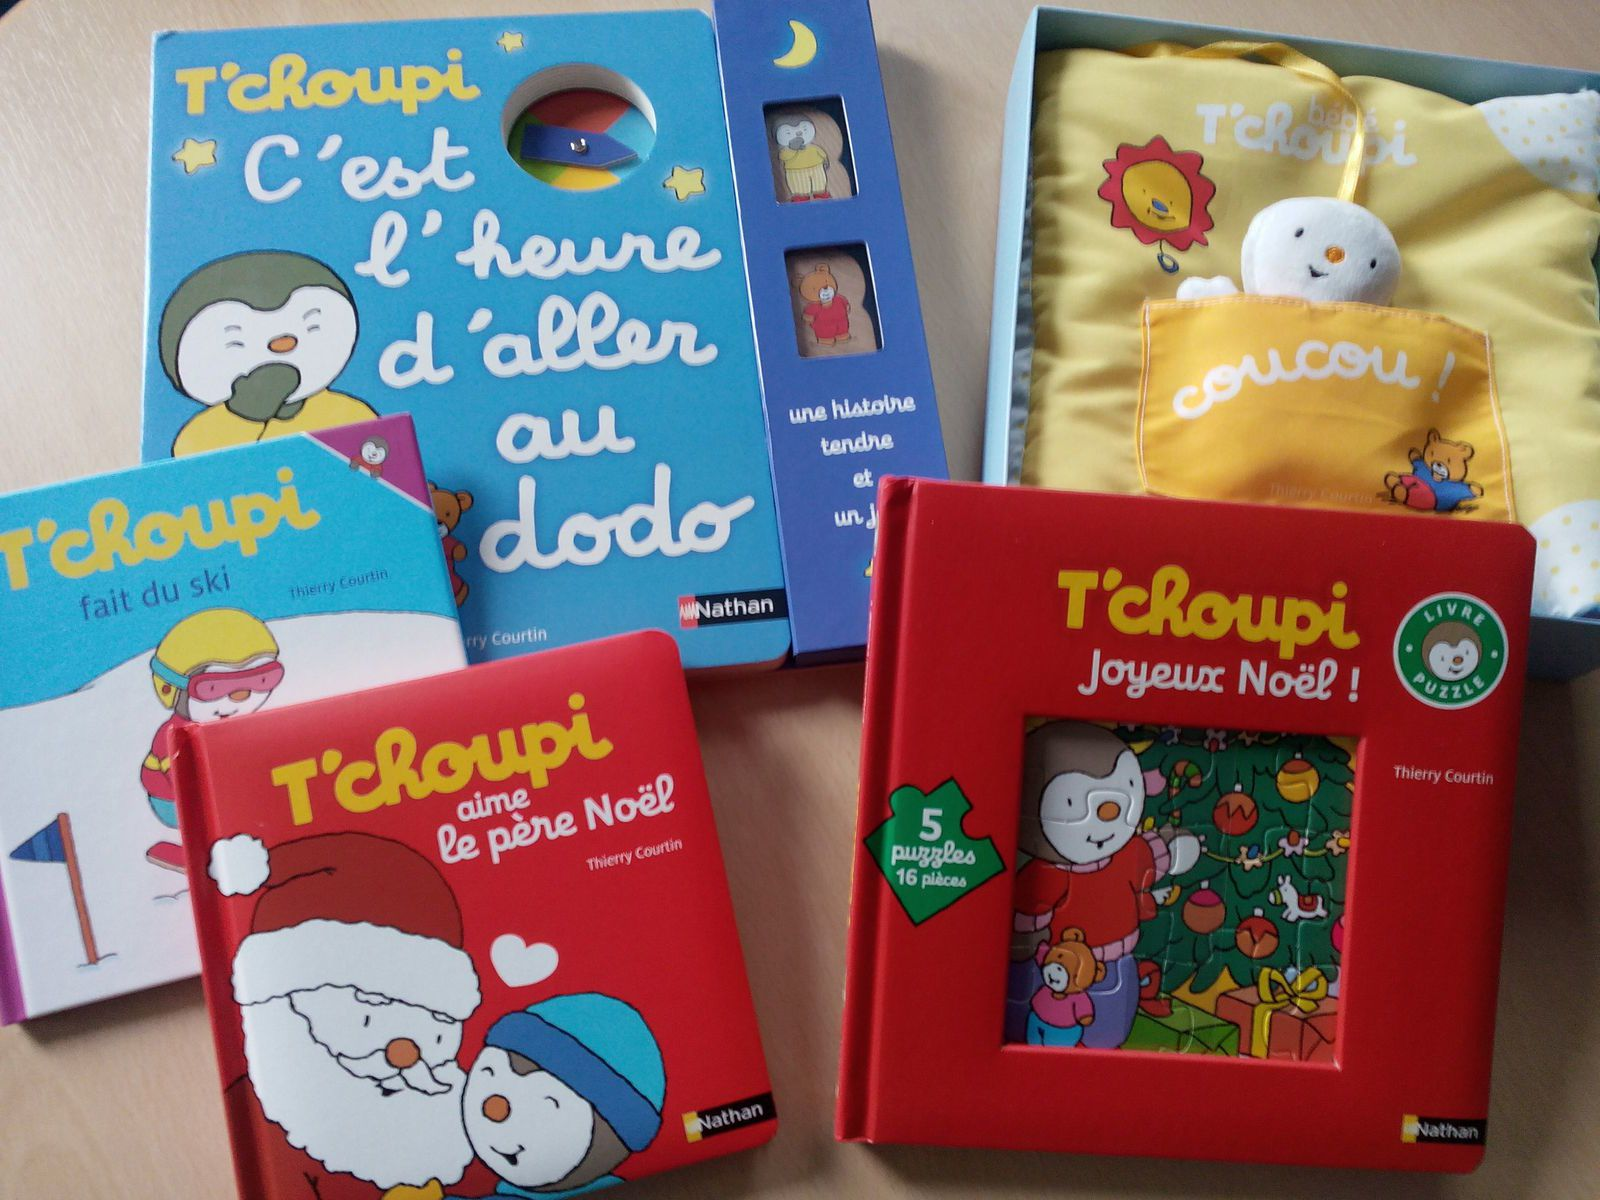 T'choupi – Thierry Courtin